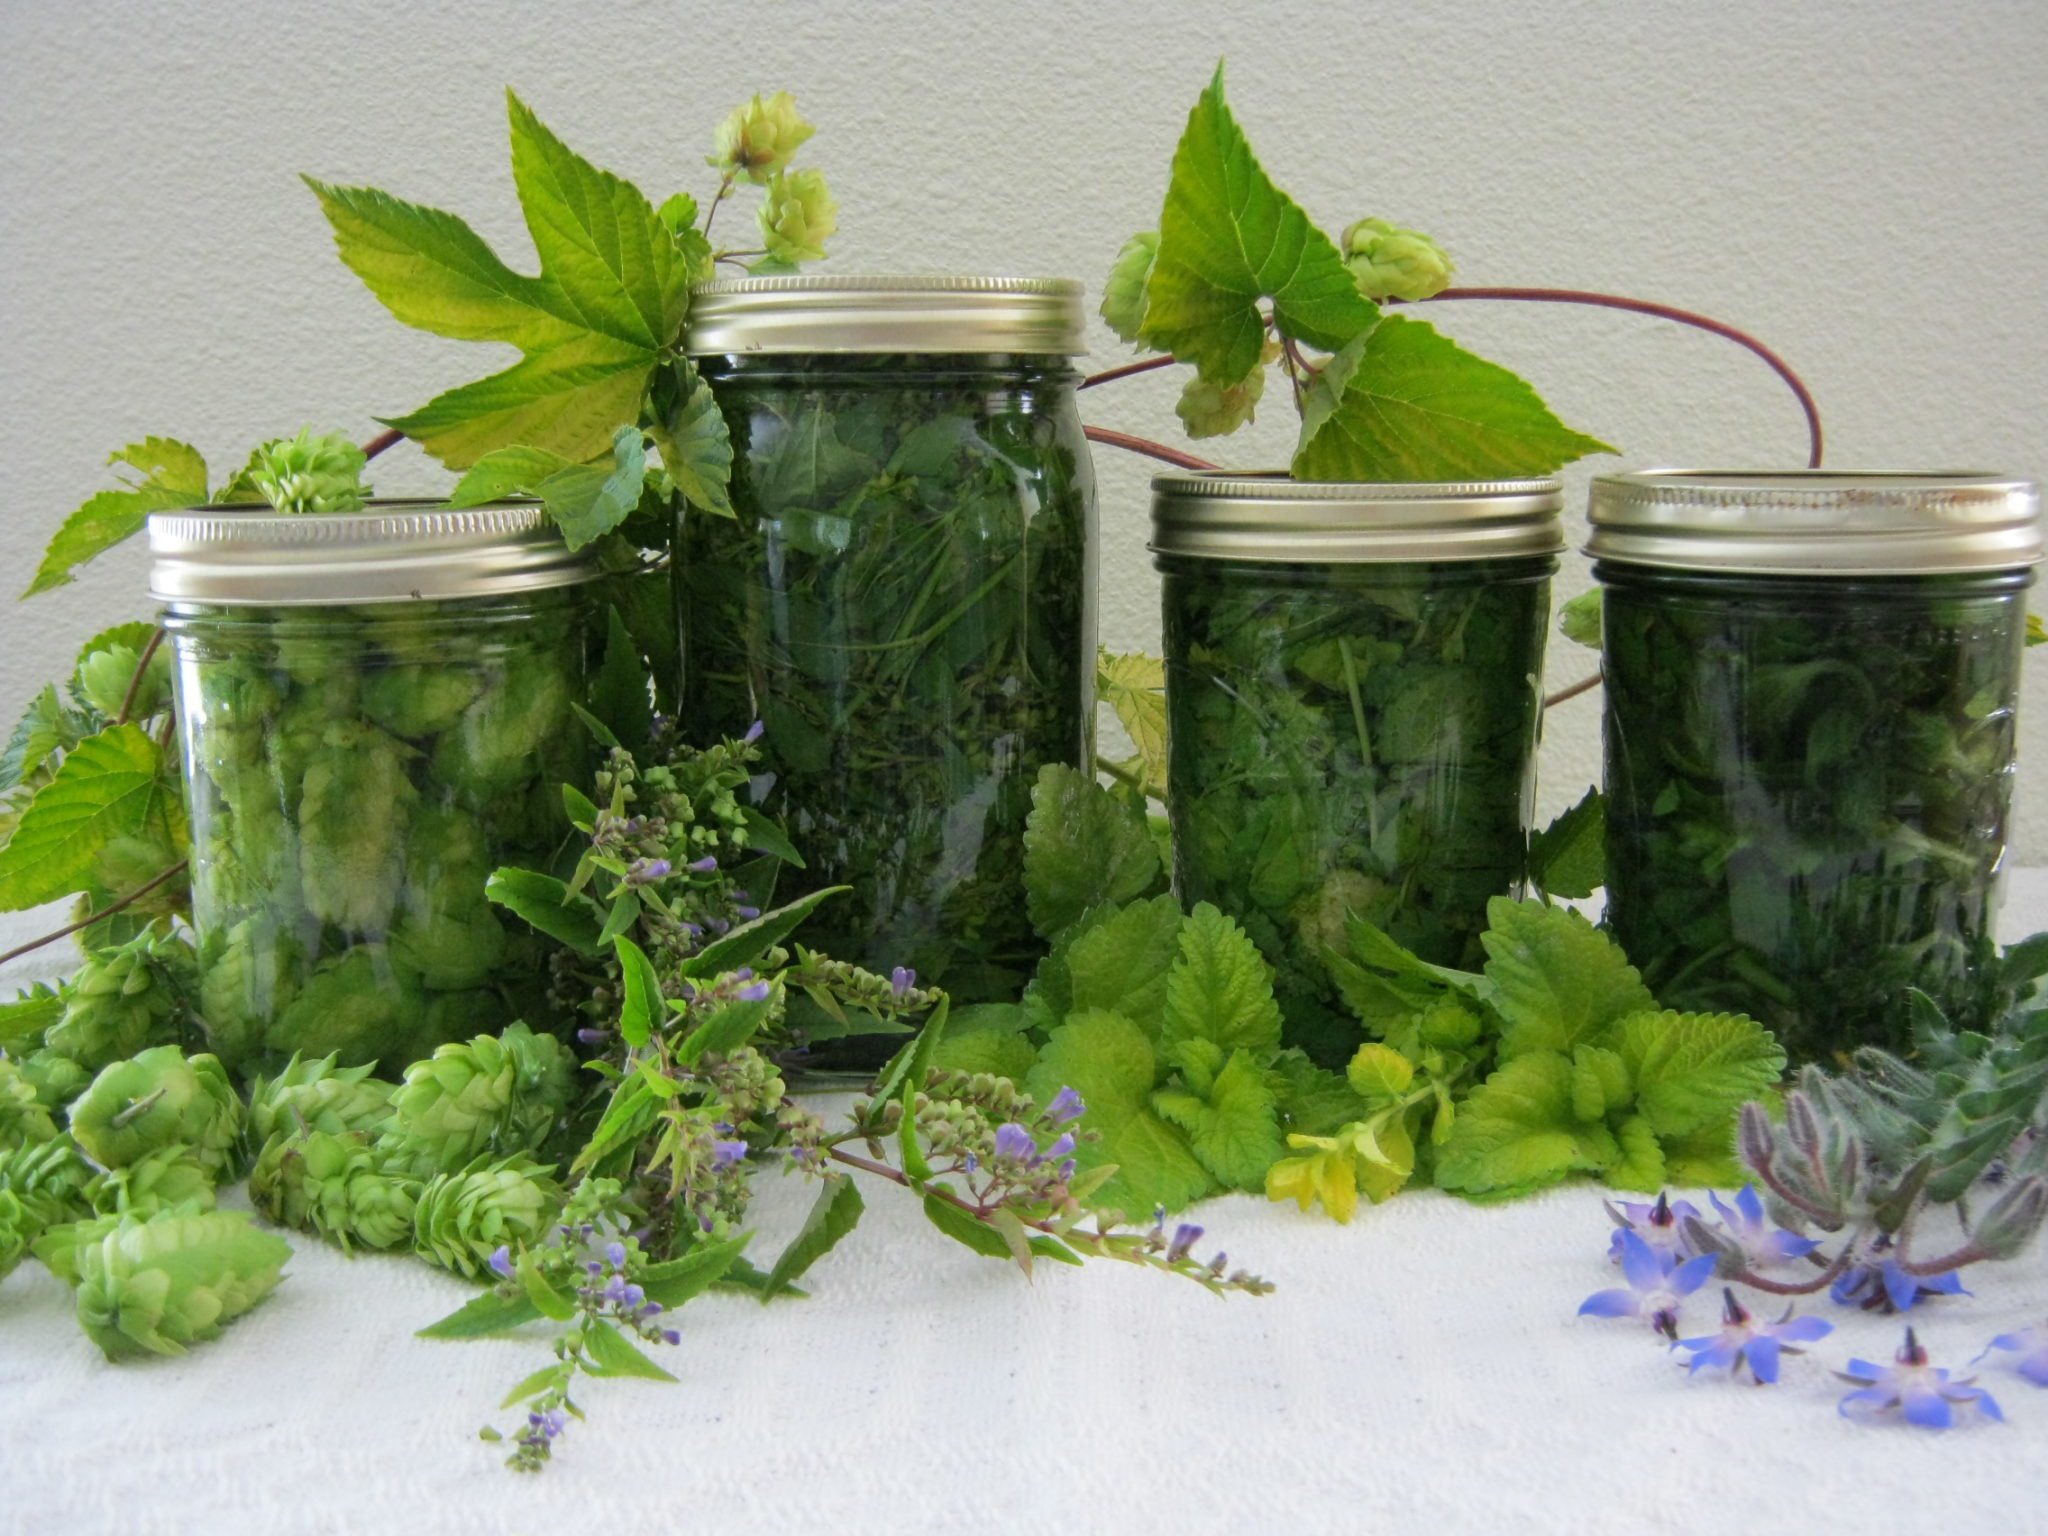 Hops (Taff's variegated hops) , Skullcap (Scutellaria lateriflora), Borage (Borago officinalis), Lemonbalm, (Melissa officinalis 'Gold Melisse')